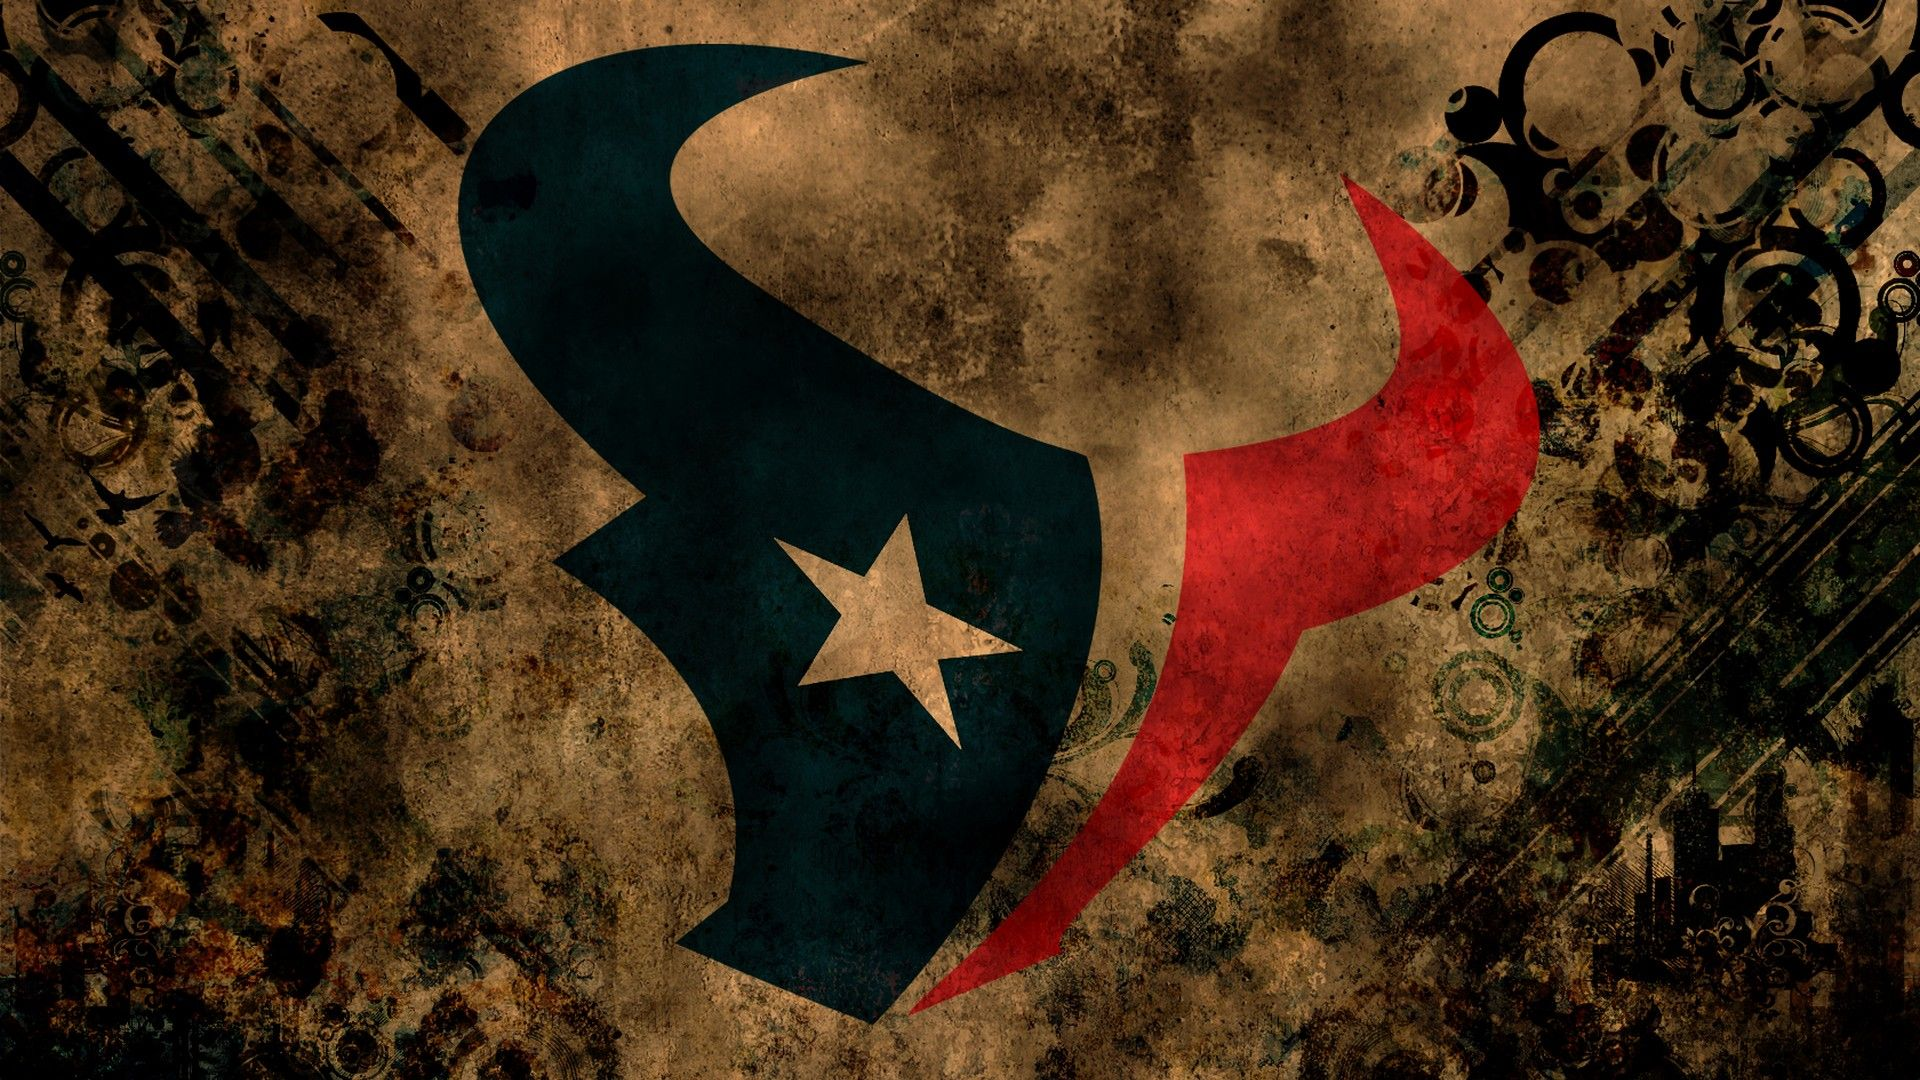 Wallpapers Houston Texans Wallpapers Houston texans Houston 1920x1080